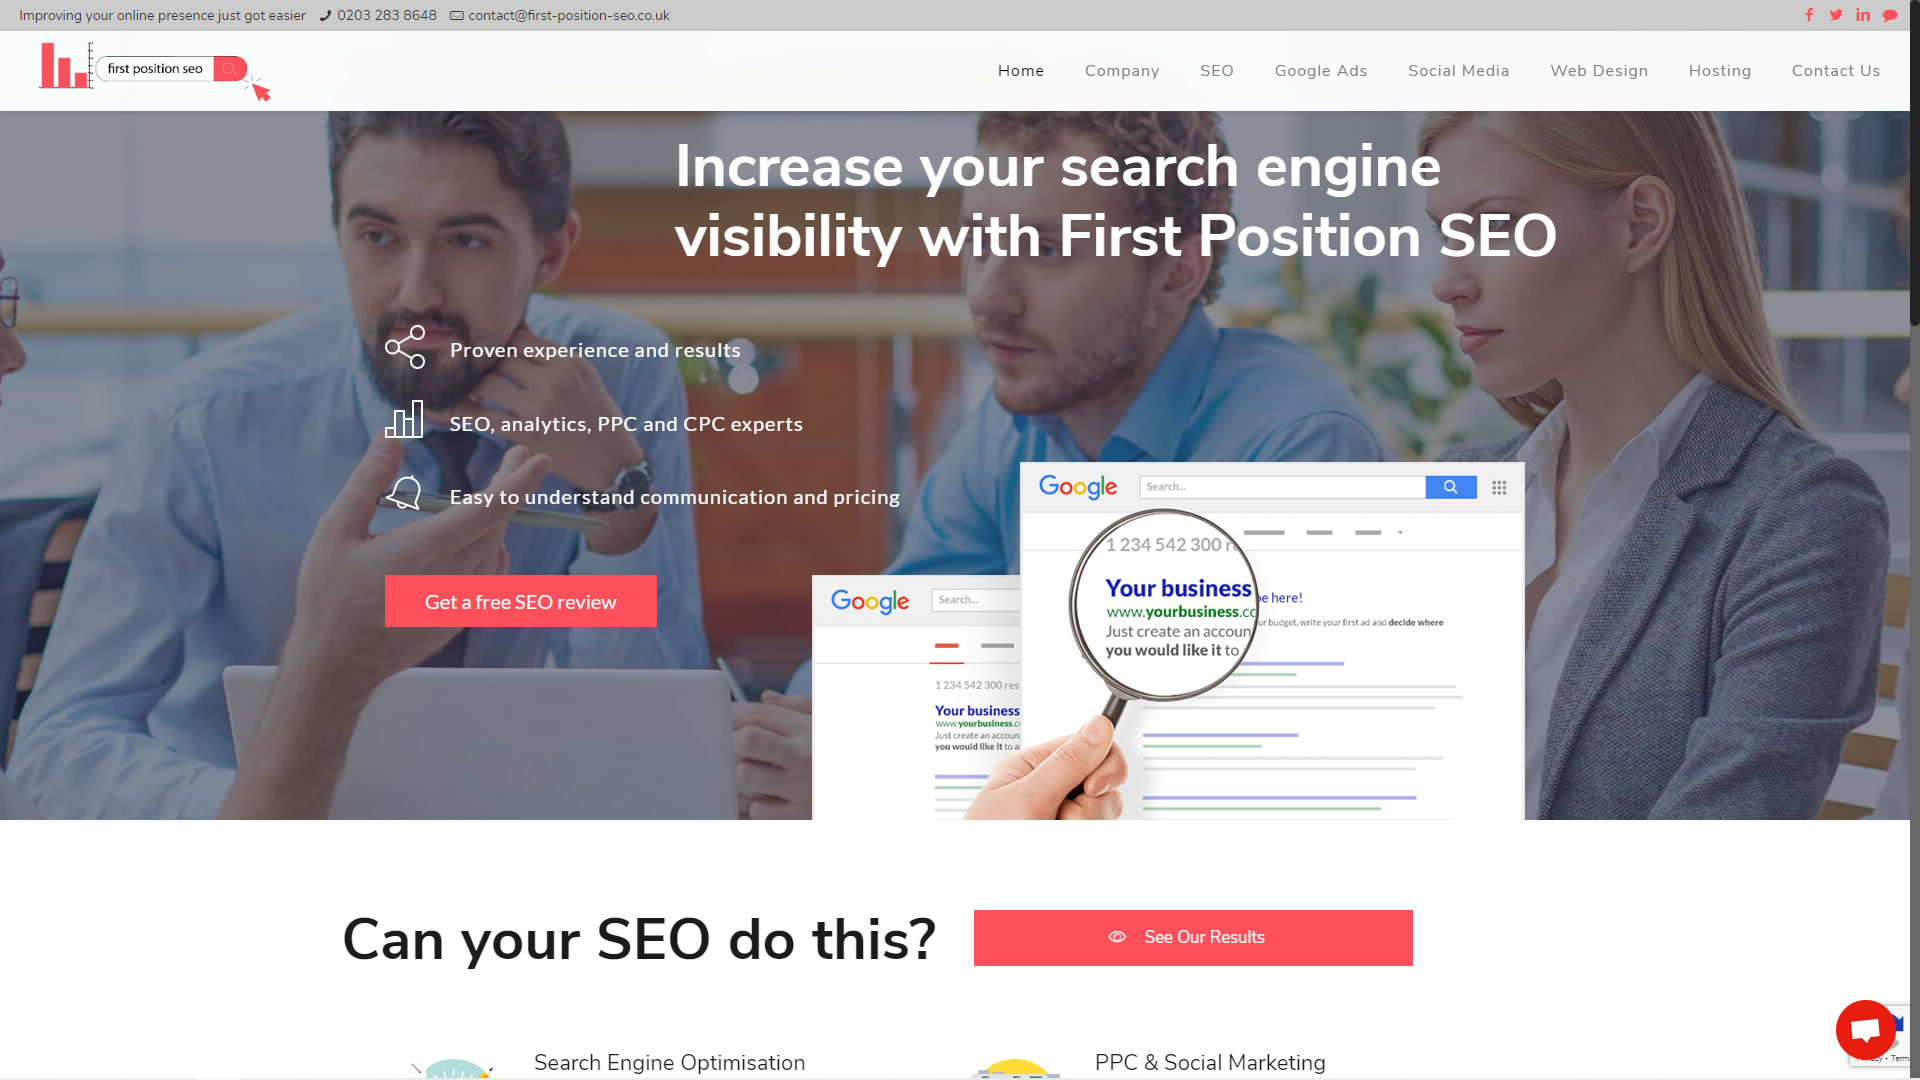 First Position SEO Website